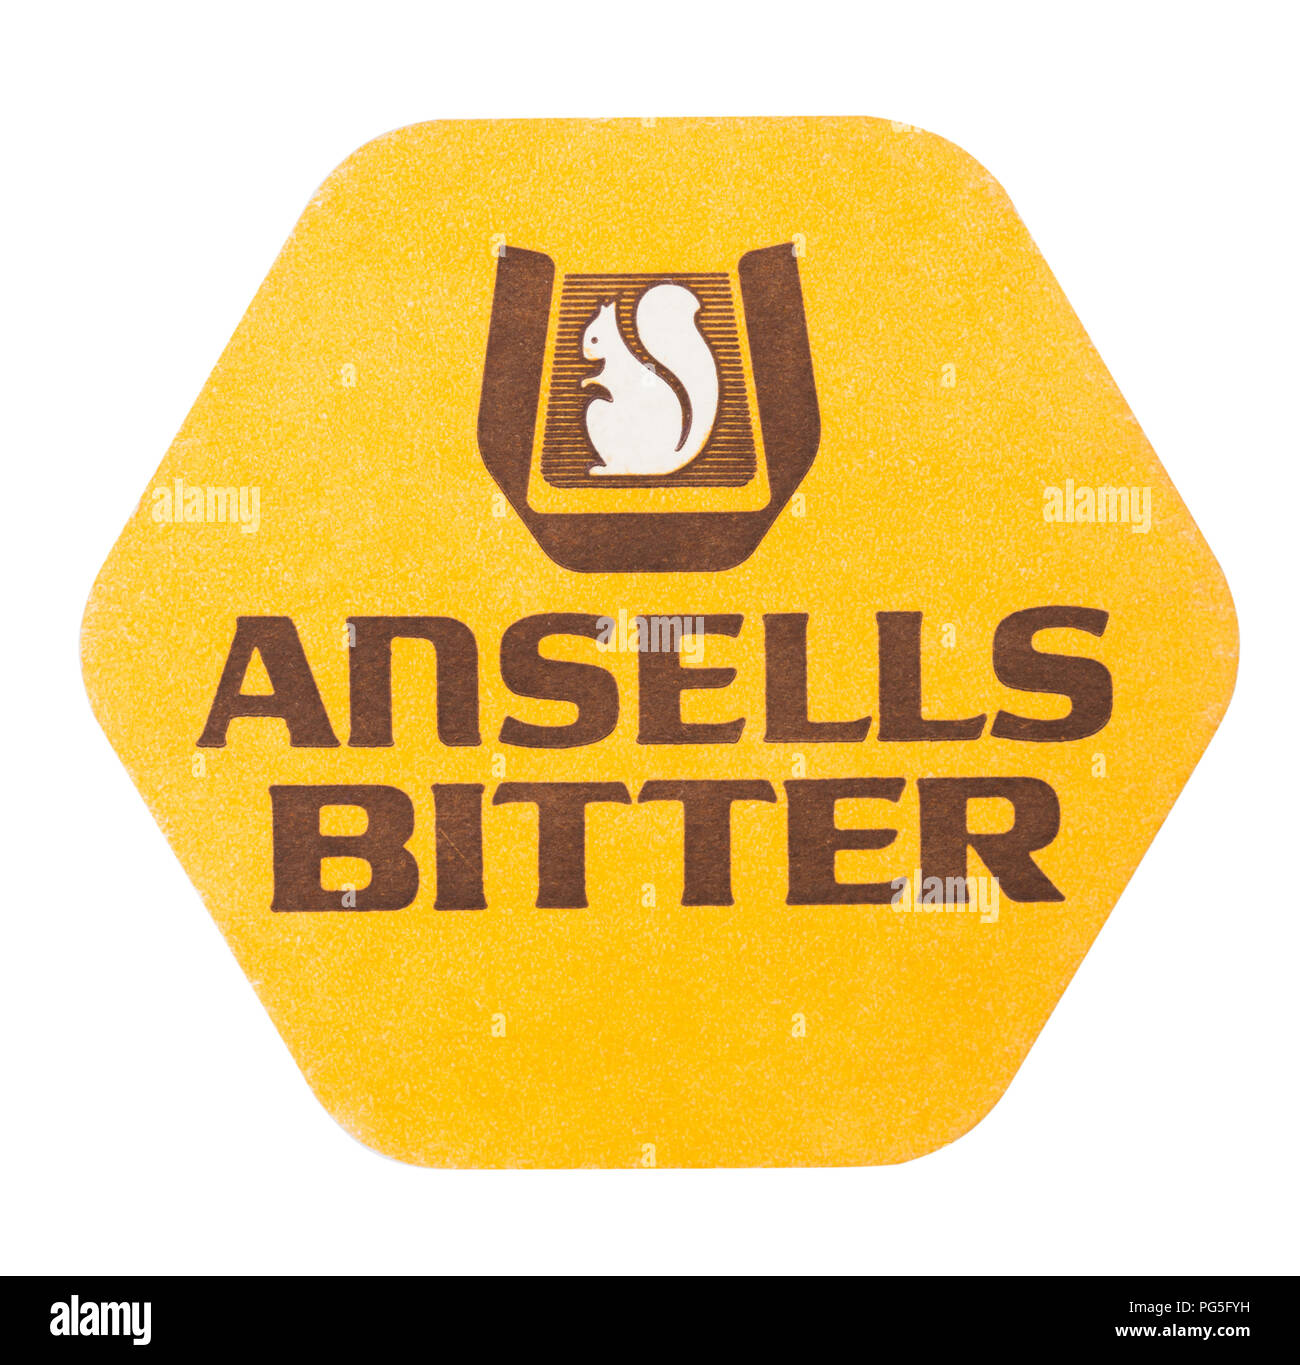 LONDON, UK - AUGUST 22, 2018: Ansells Bitter paper beer beermat coaster isolated on white background. - Stock Image